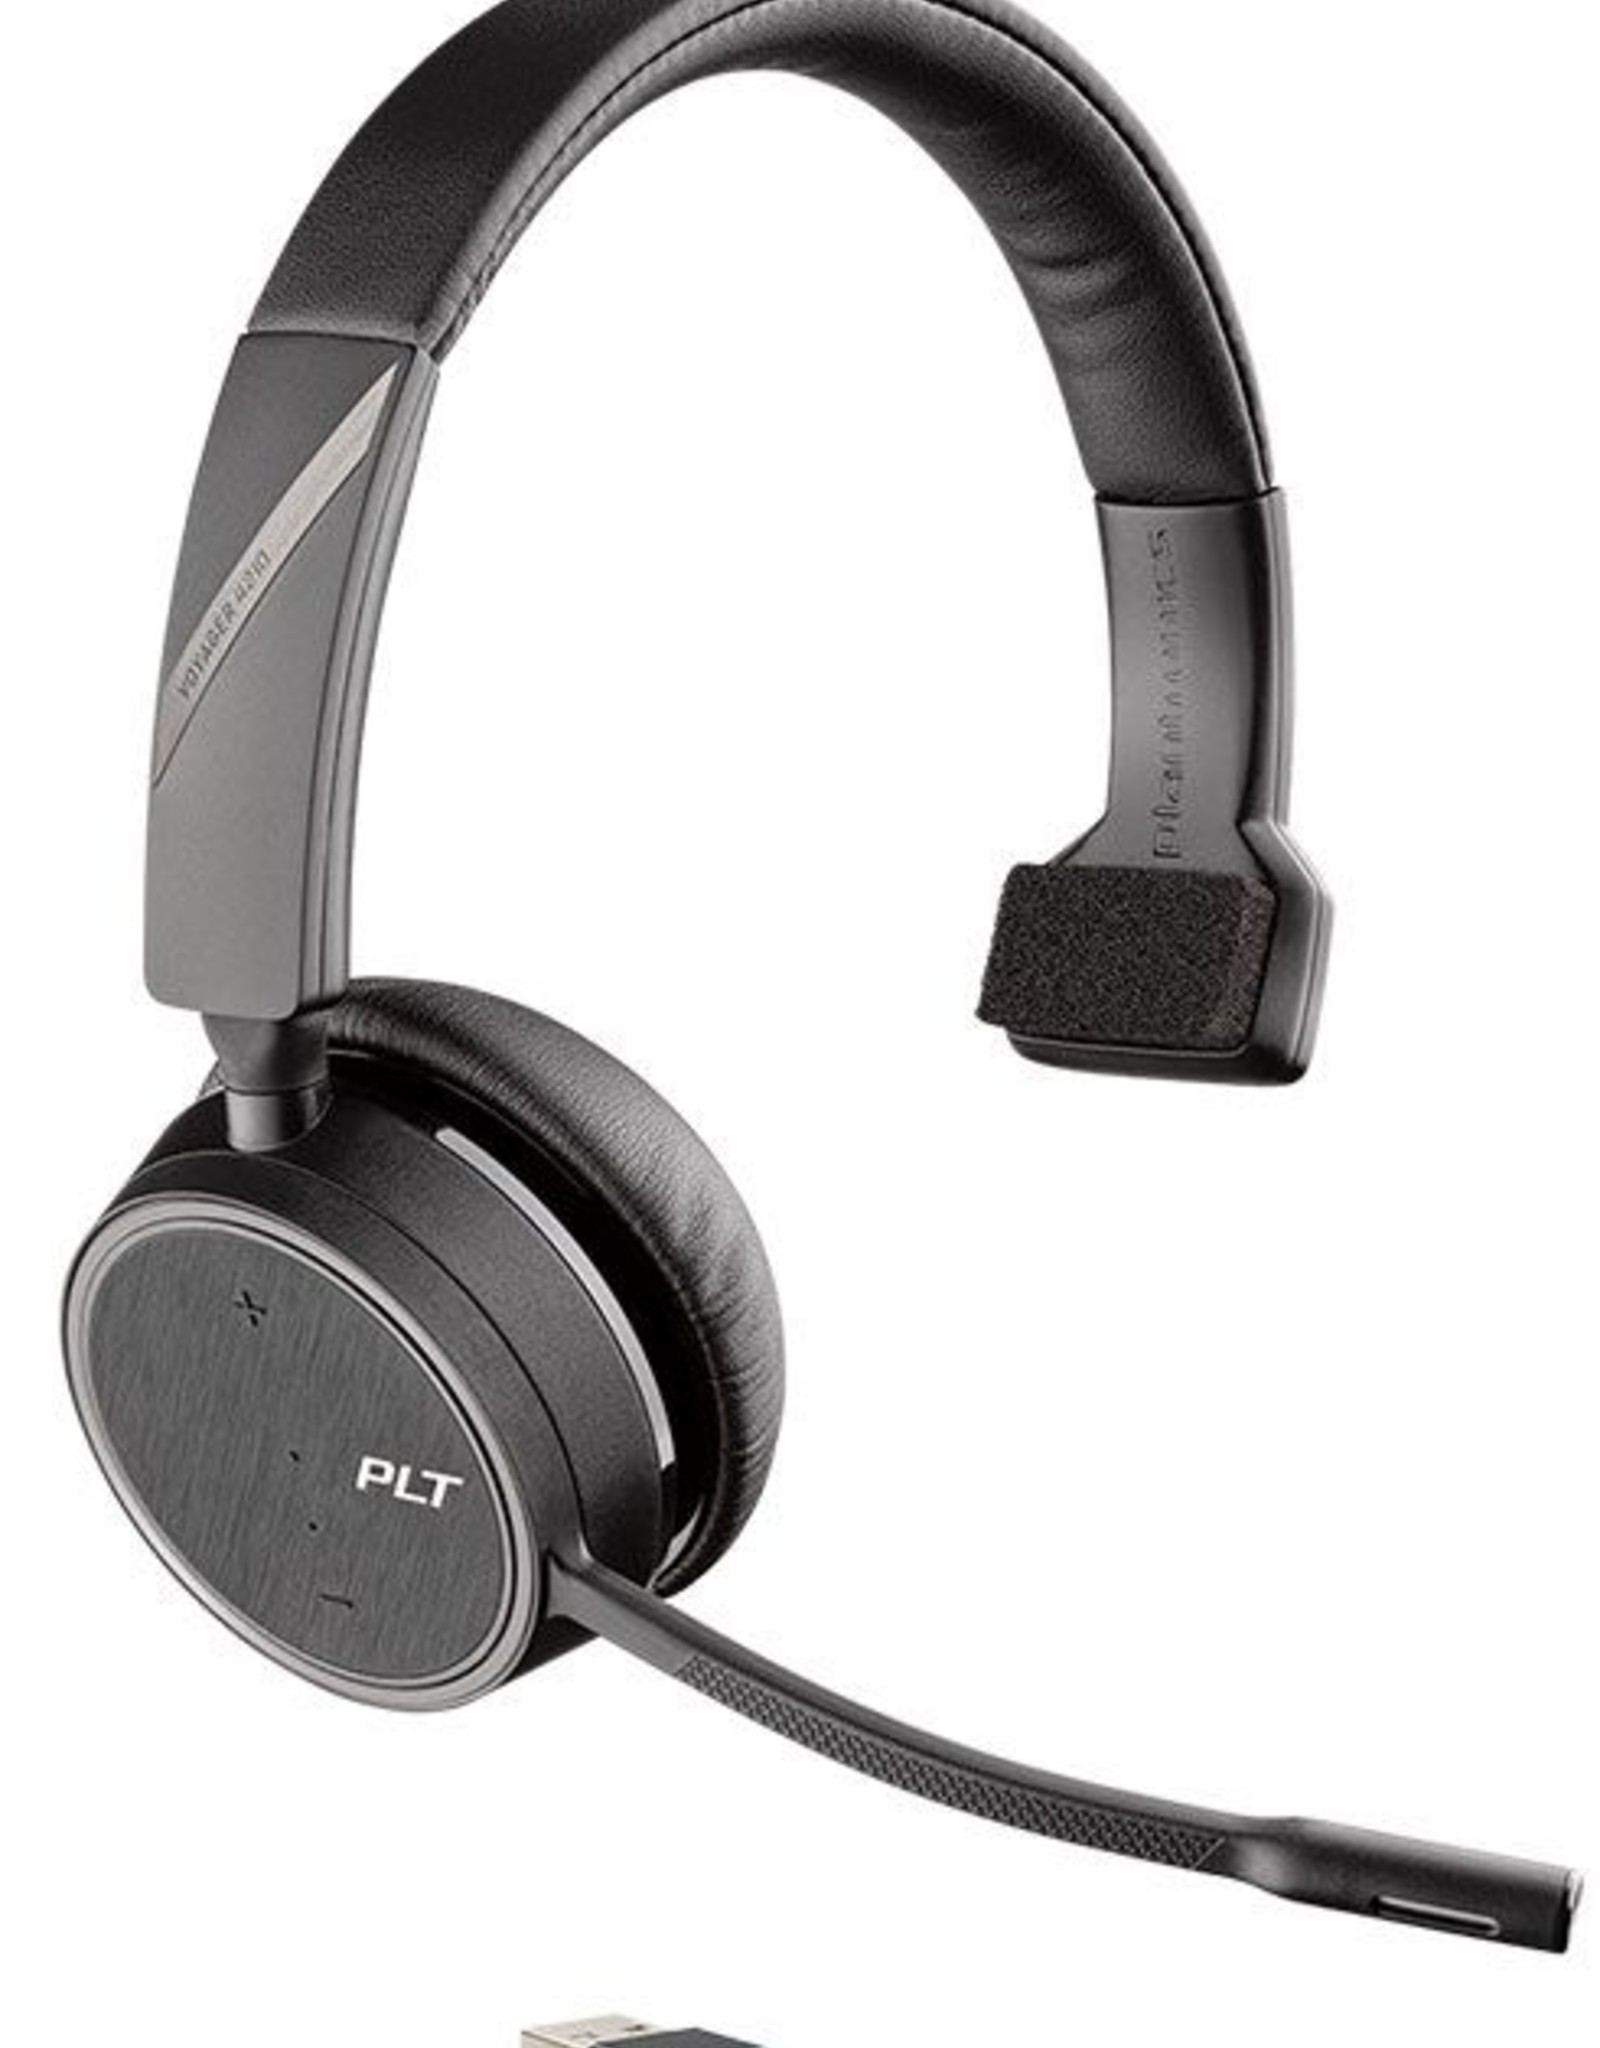 PLANTRONICS PLANTRONICS VOYAGER B4210 1-EAR USB-A WIRELESS HEADSET